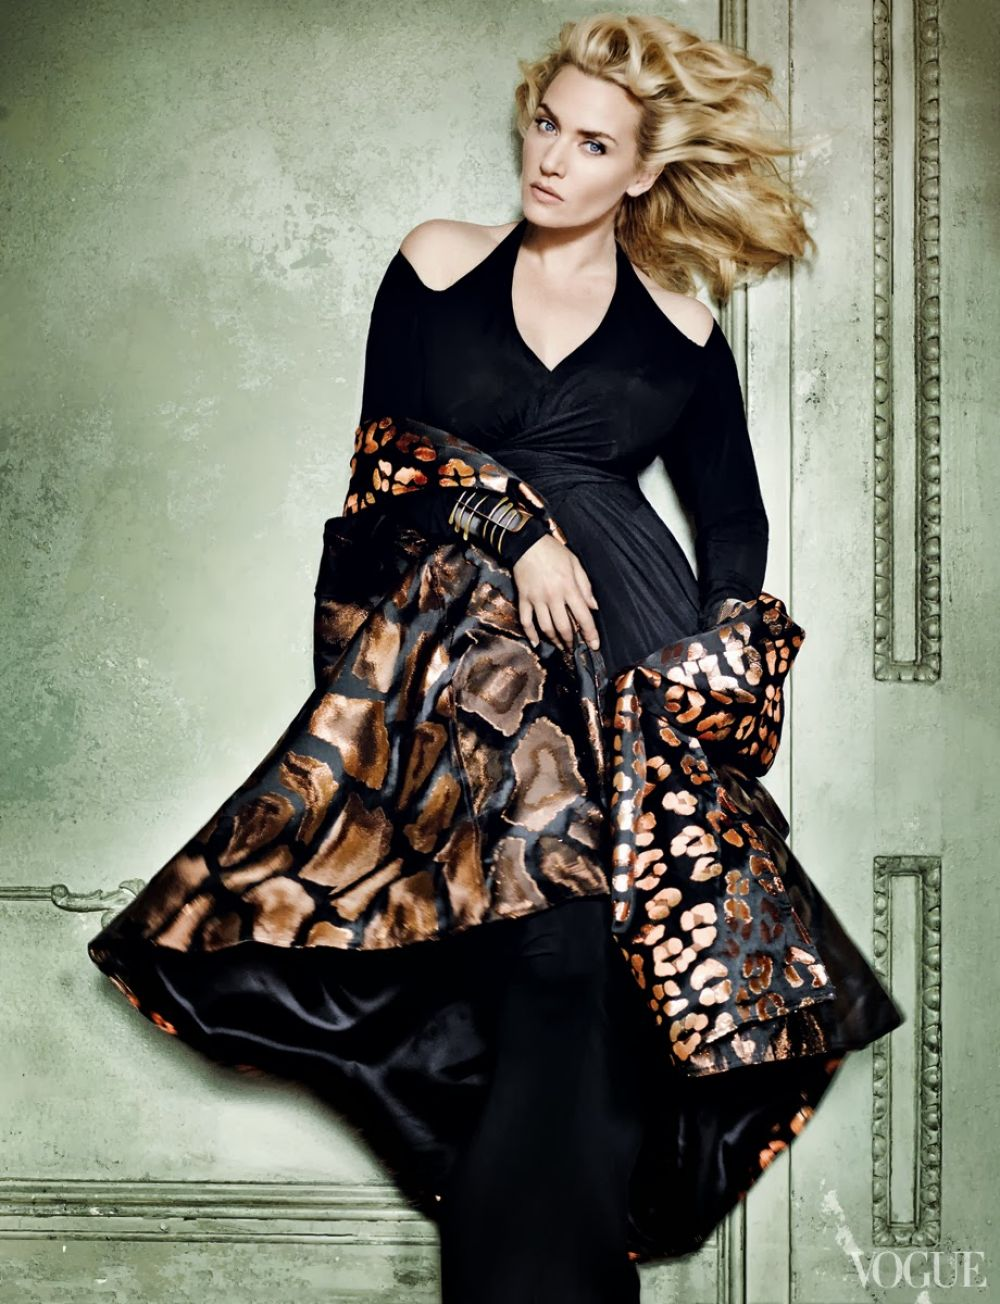 Kate Winslet - Vogue USA November 2013 Issue